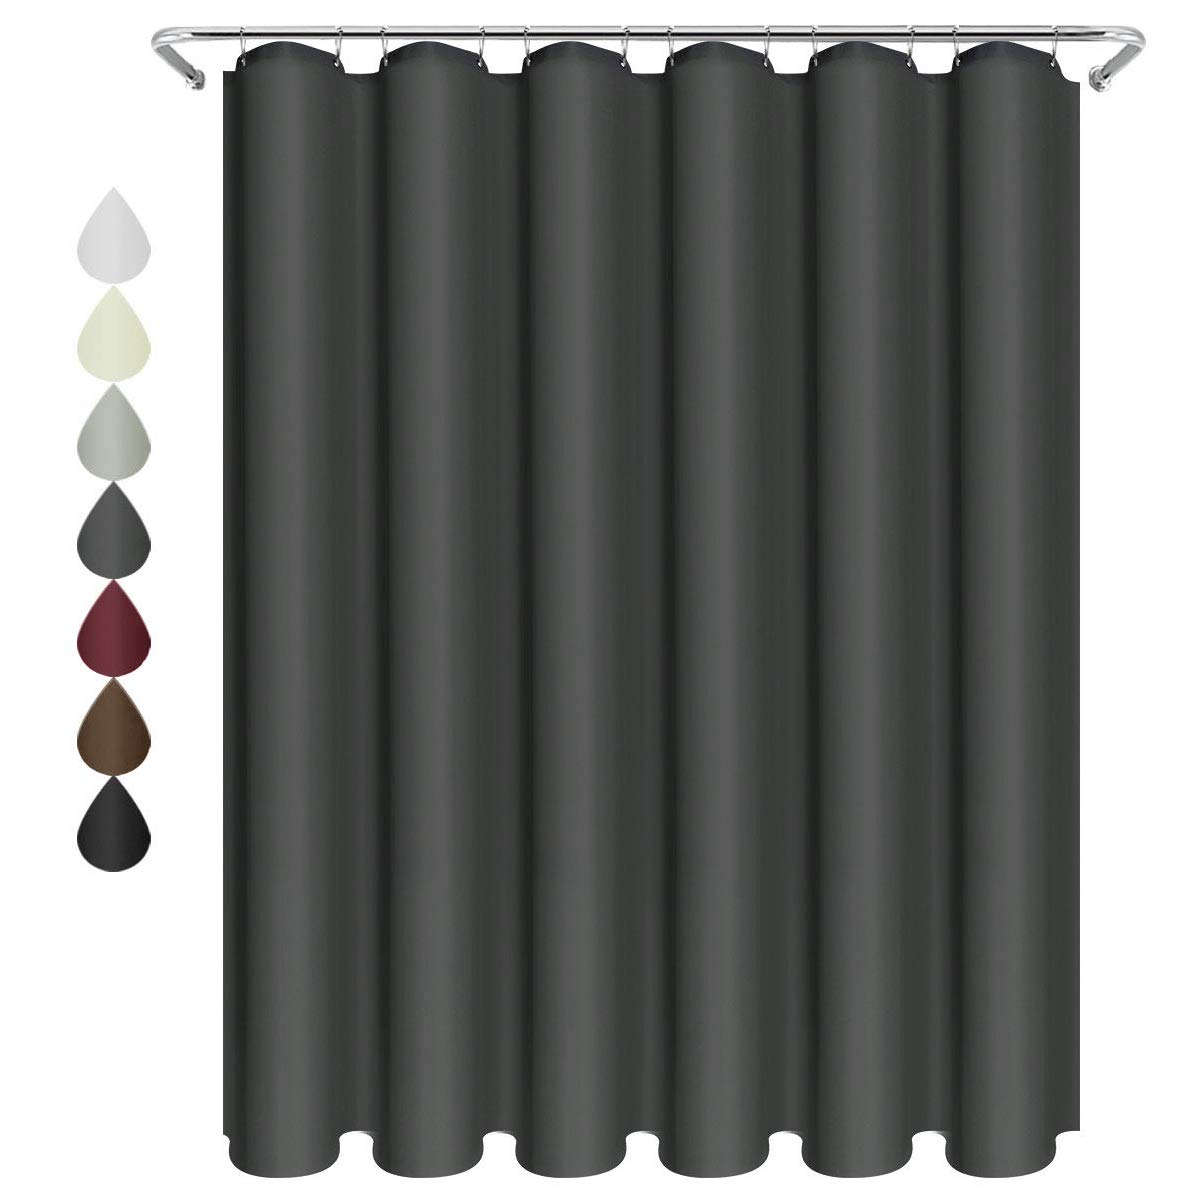 Eforgift Polyester Bathroom Curtain Water Glides Off Thick Solid Design, Modern Fabric Curtain Shower Easy Care, XX Long 72-inch x 86-inch Hooks, Dark Gray